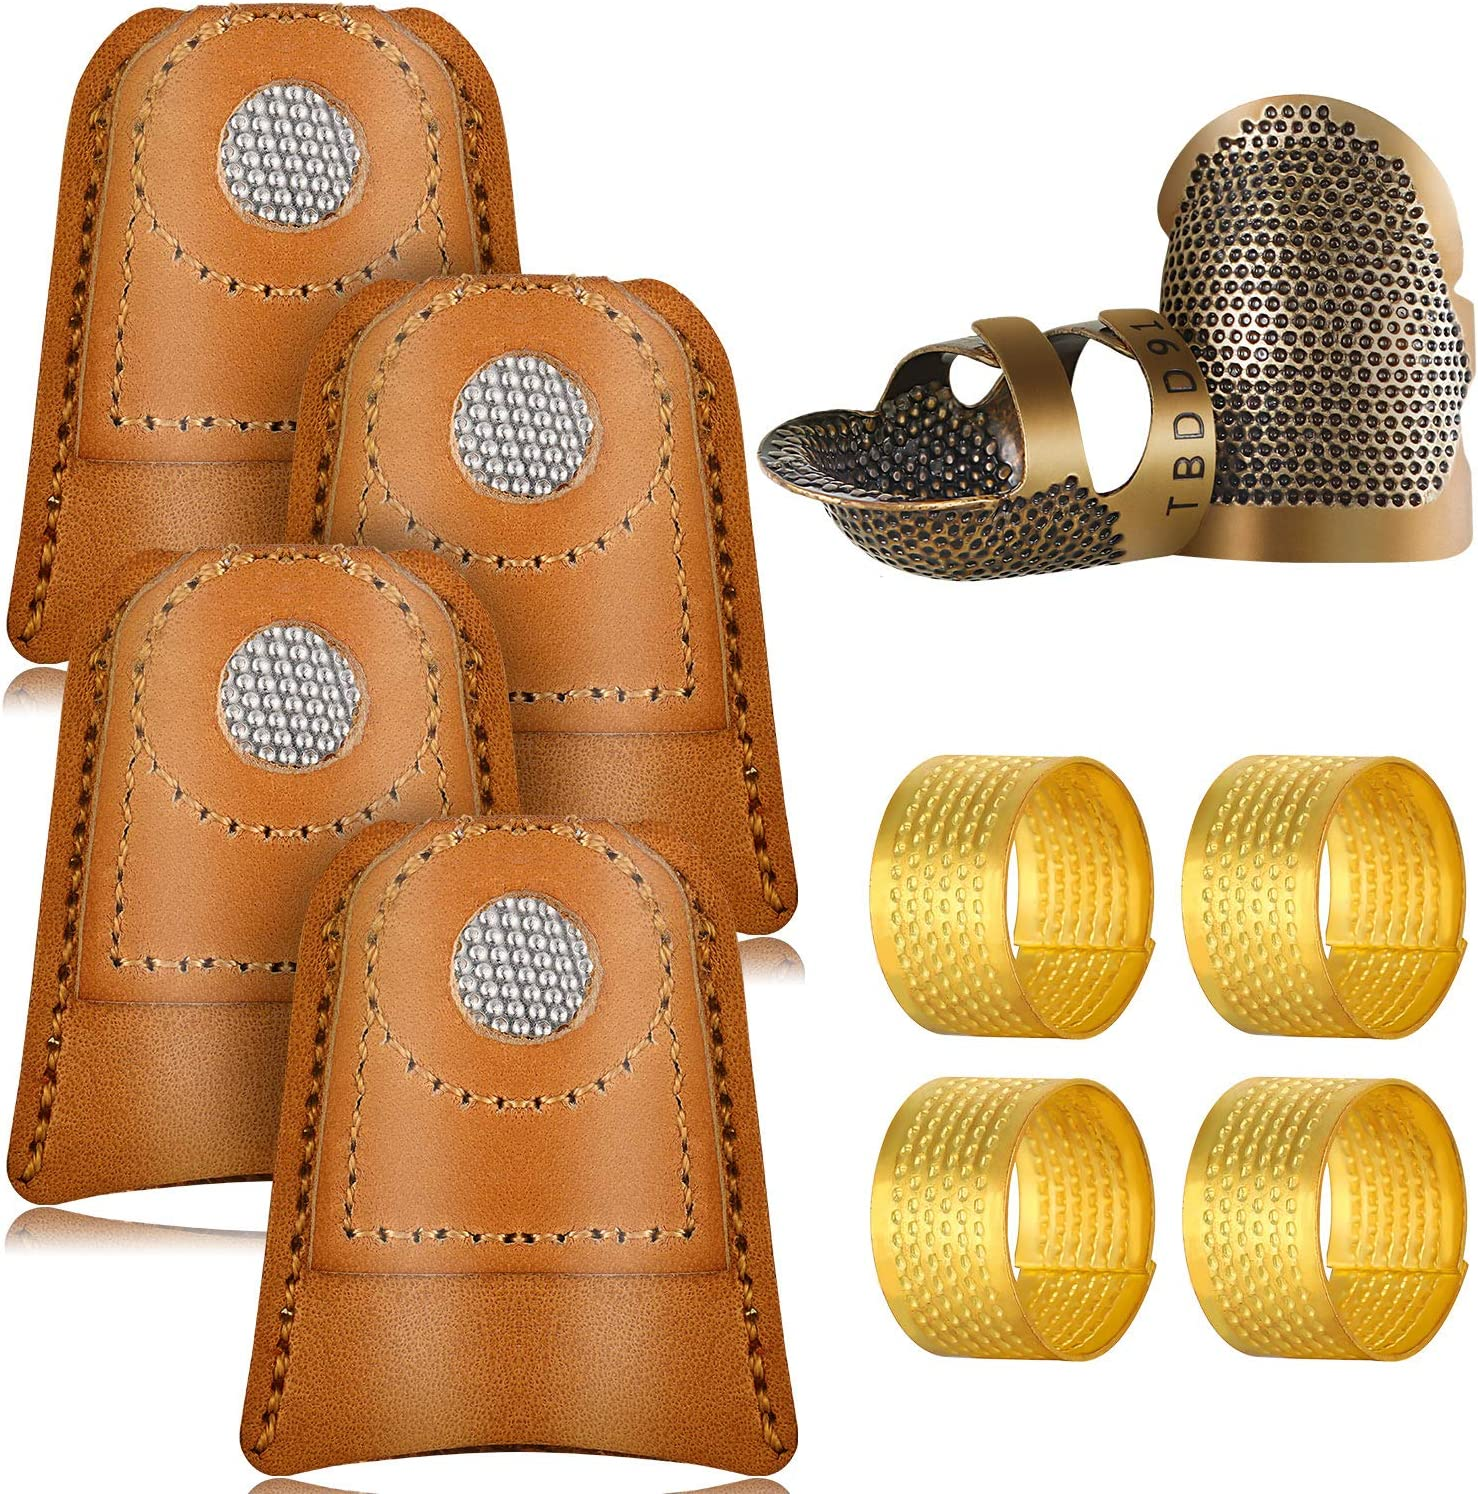 ARTIBETTER 10pcs Sewing Thimble Finger Protector Leather Thimble Finger Pads Coin Thimble Protector for Knitting Sewing Quilting Random Color